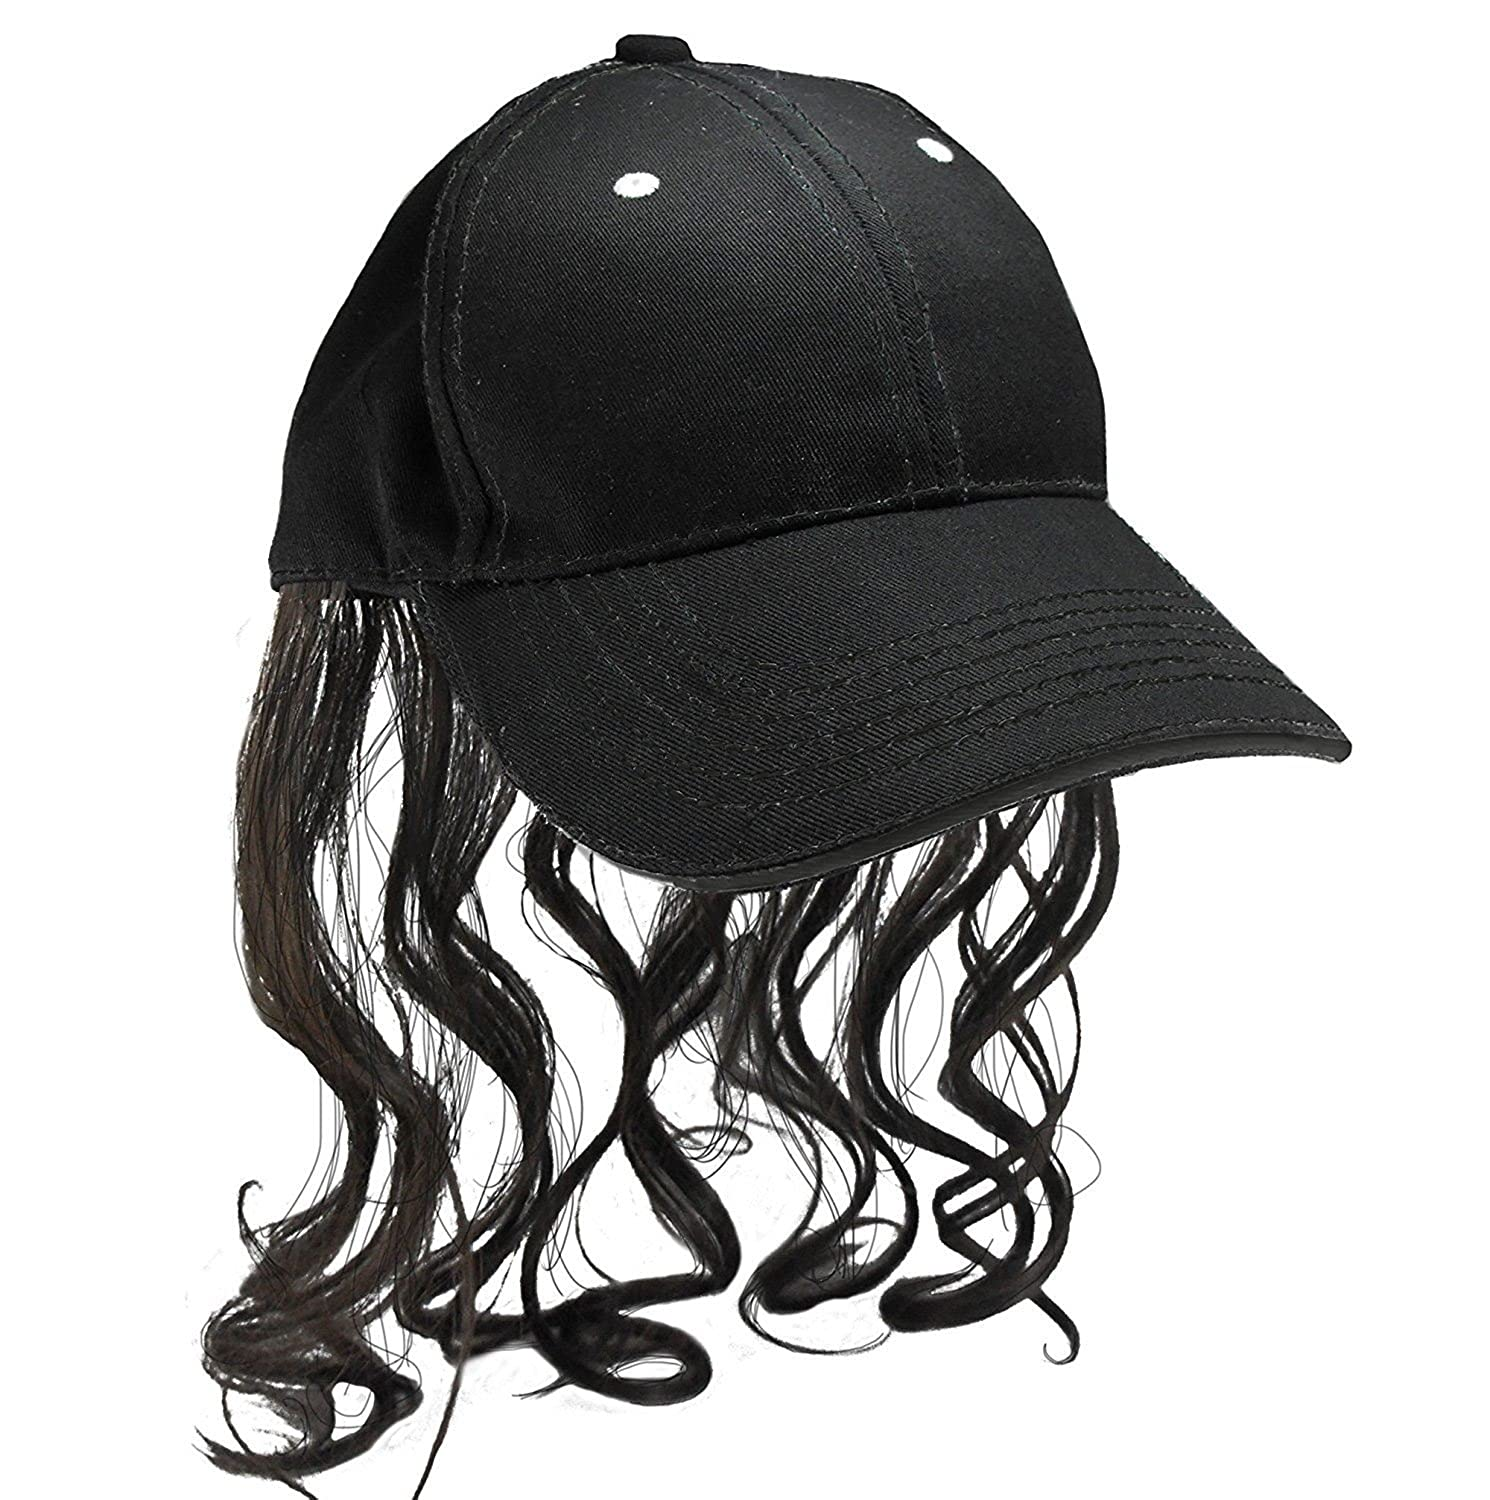 Amazon.com  Hillbilly Mullet Cap With Sewn In Polyester Hair - Get Your  Redneck Style On  Clothing c1770013cdd